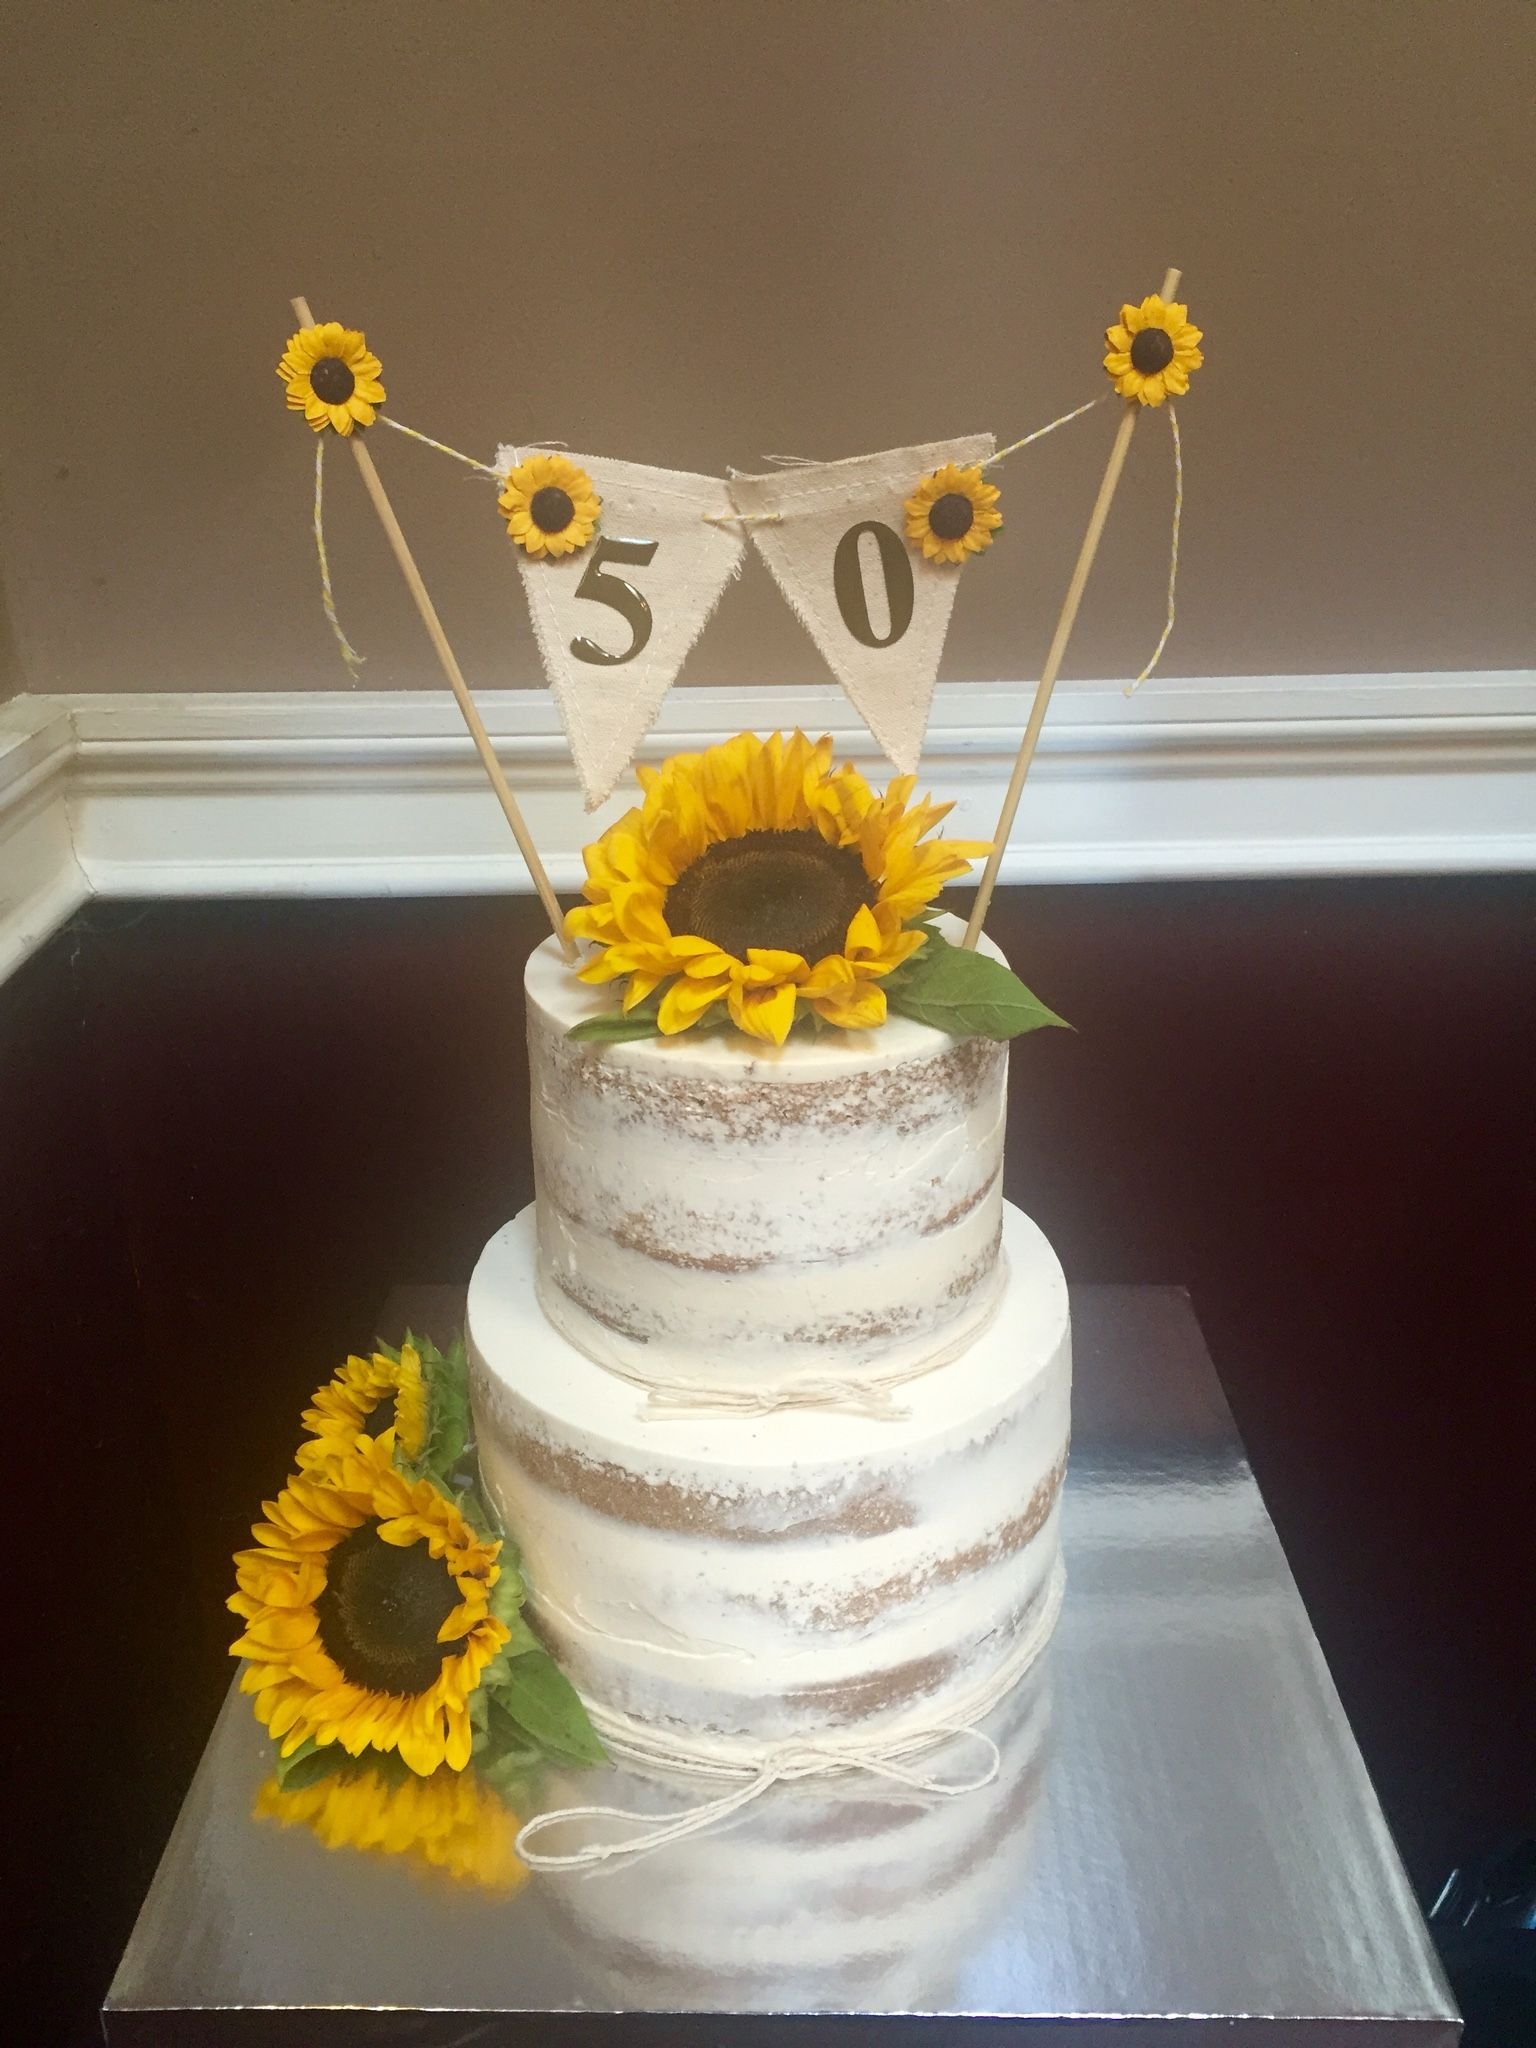 Sunflower Birthday Cake Semi Naked W Sunflowers And 50th Banner